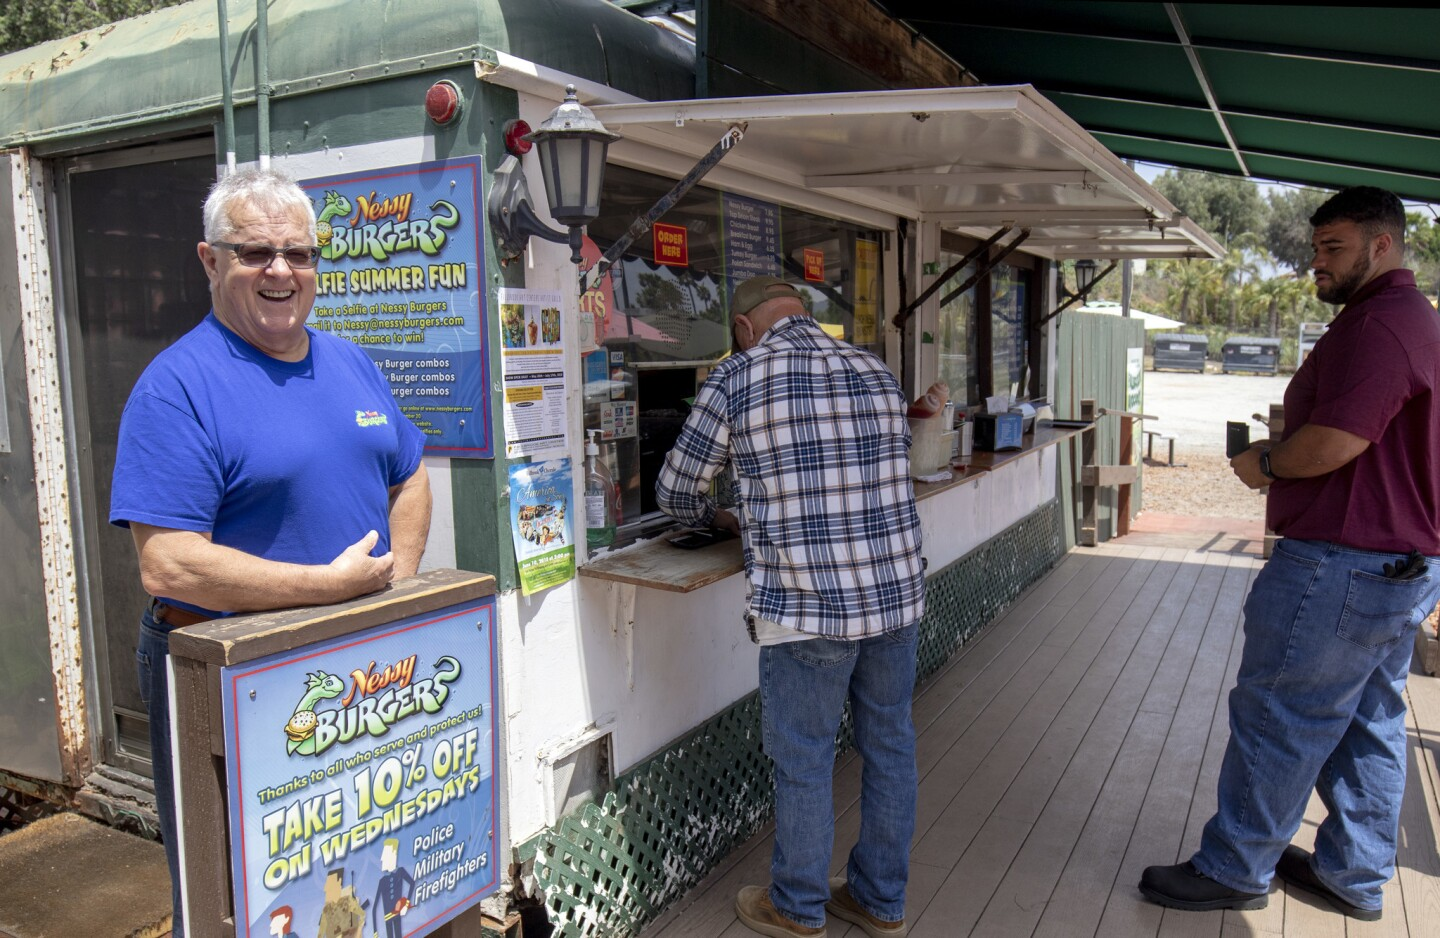 Charlie Webster, left, stands outside the Nessy Burgers, the Fallbrook hamburger stand that his late wife, Sandra, co-founded in 1989.